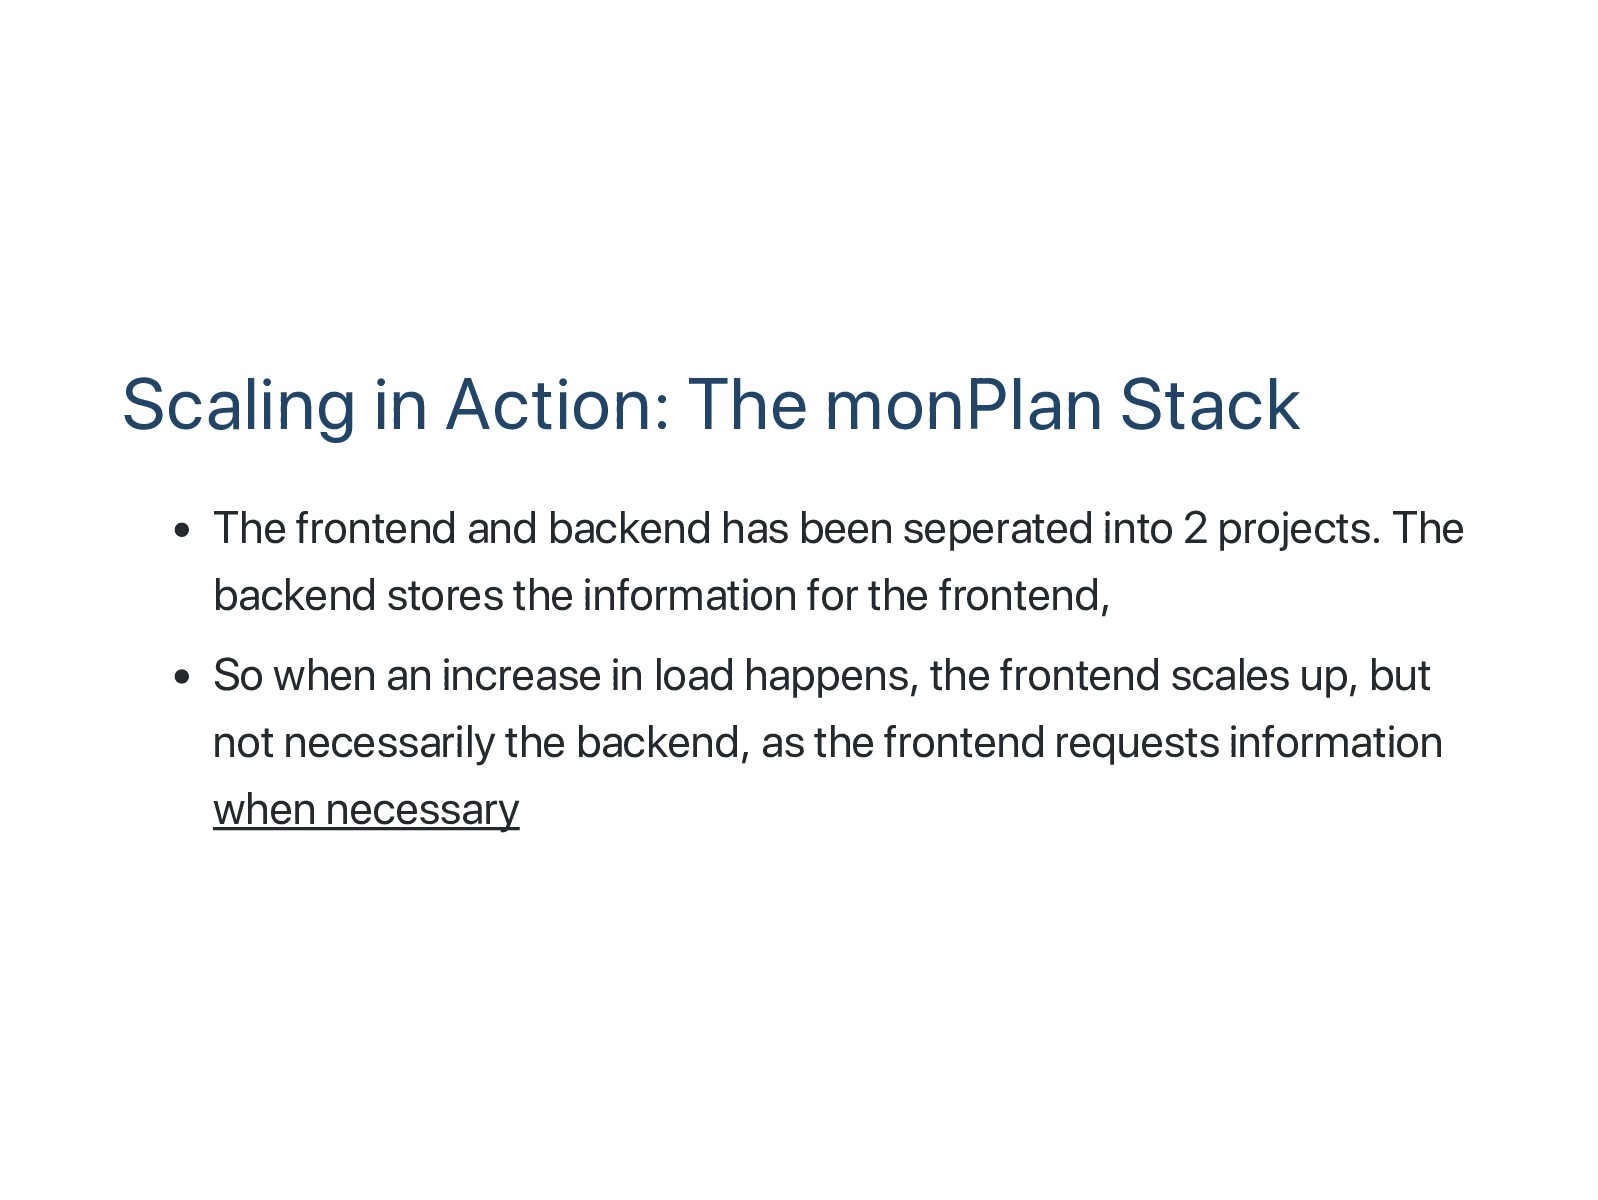 Scaling in Action: The monPlan Stack The fronte...